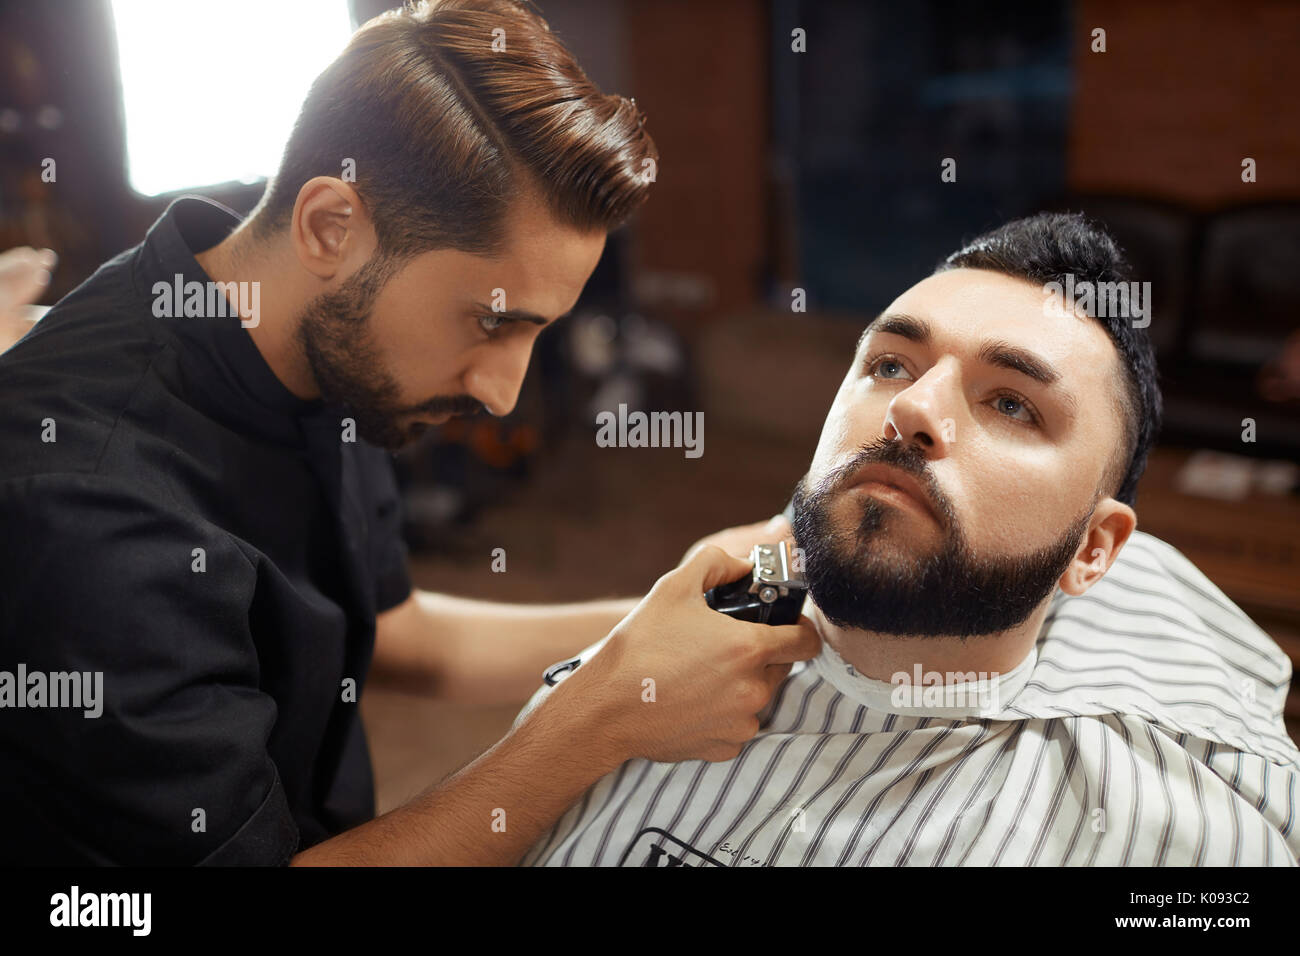 Stylish barber shaving man  - Stock Image